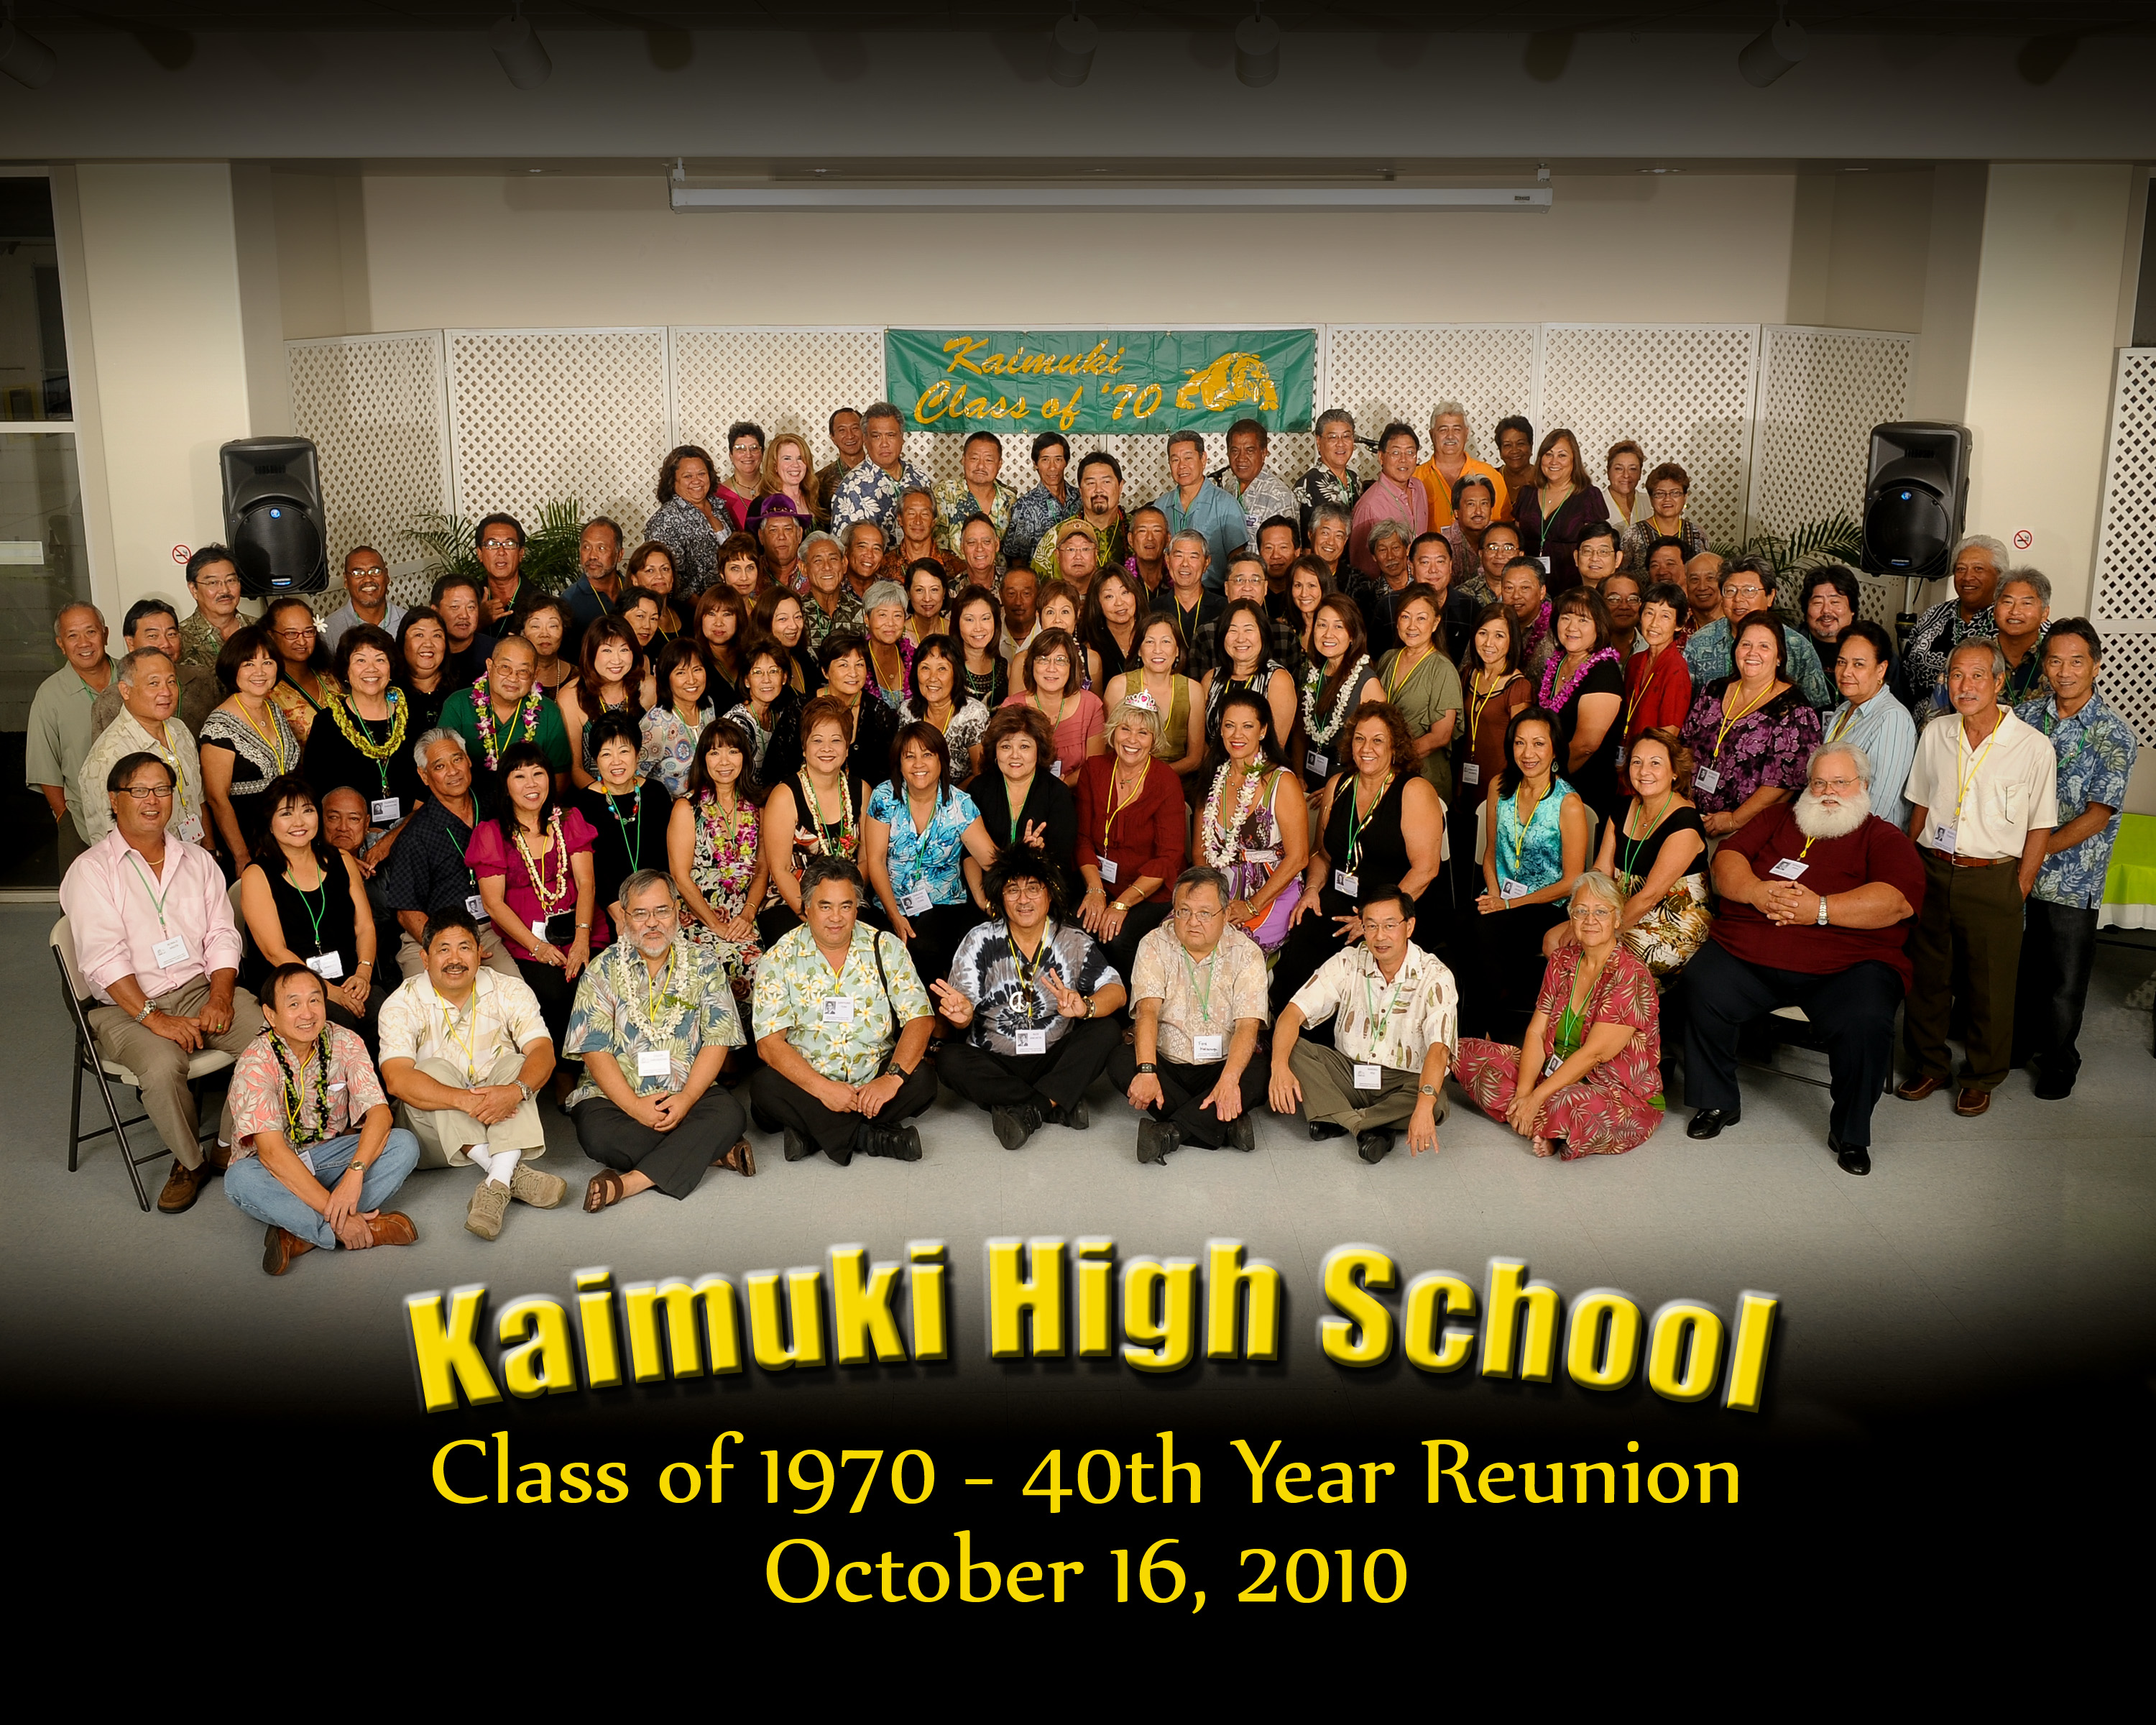 Kaimuki High Class Of 1970 Archives